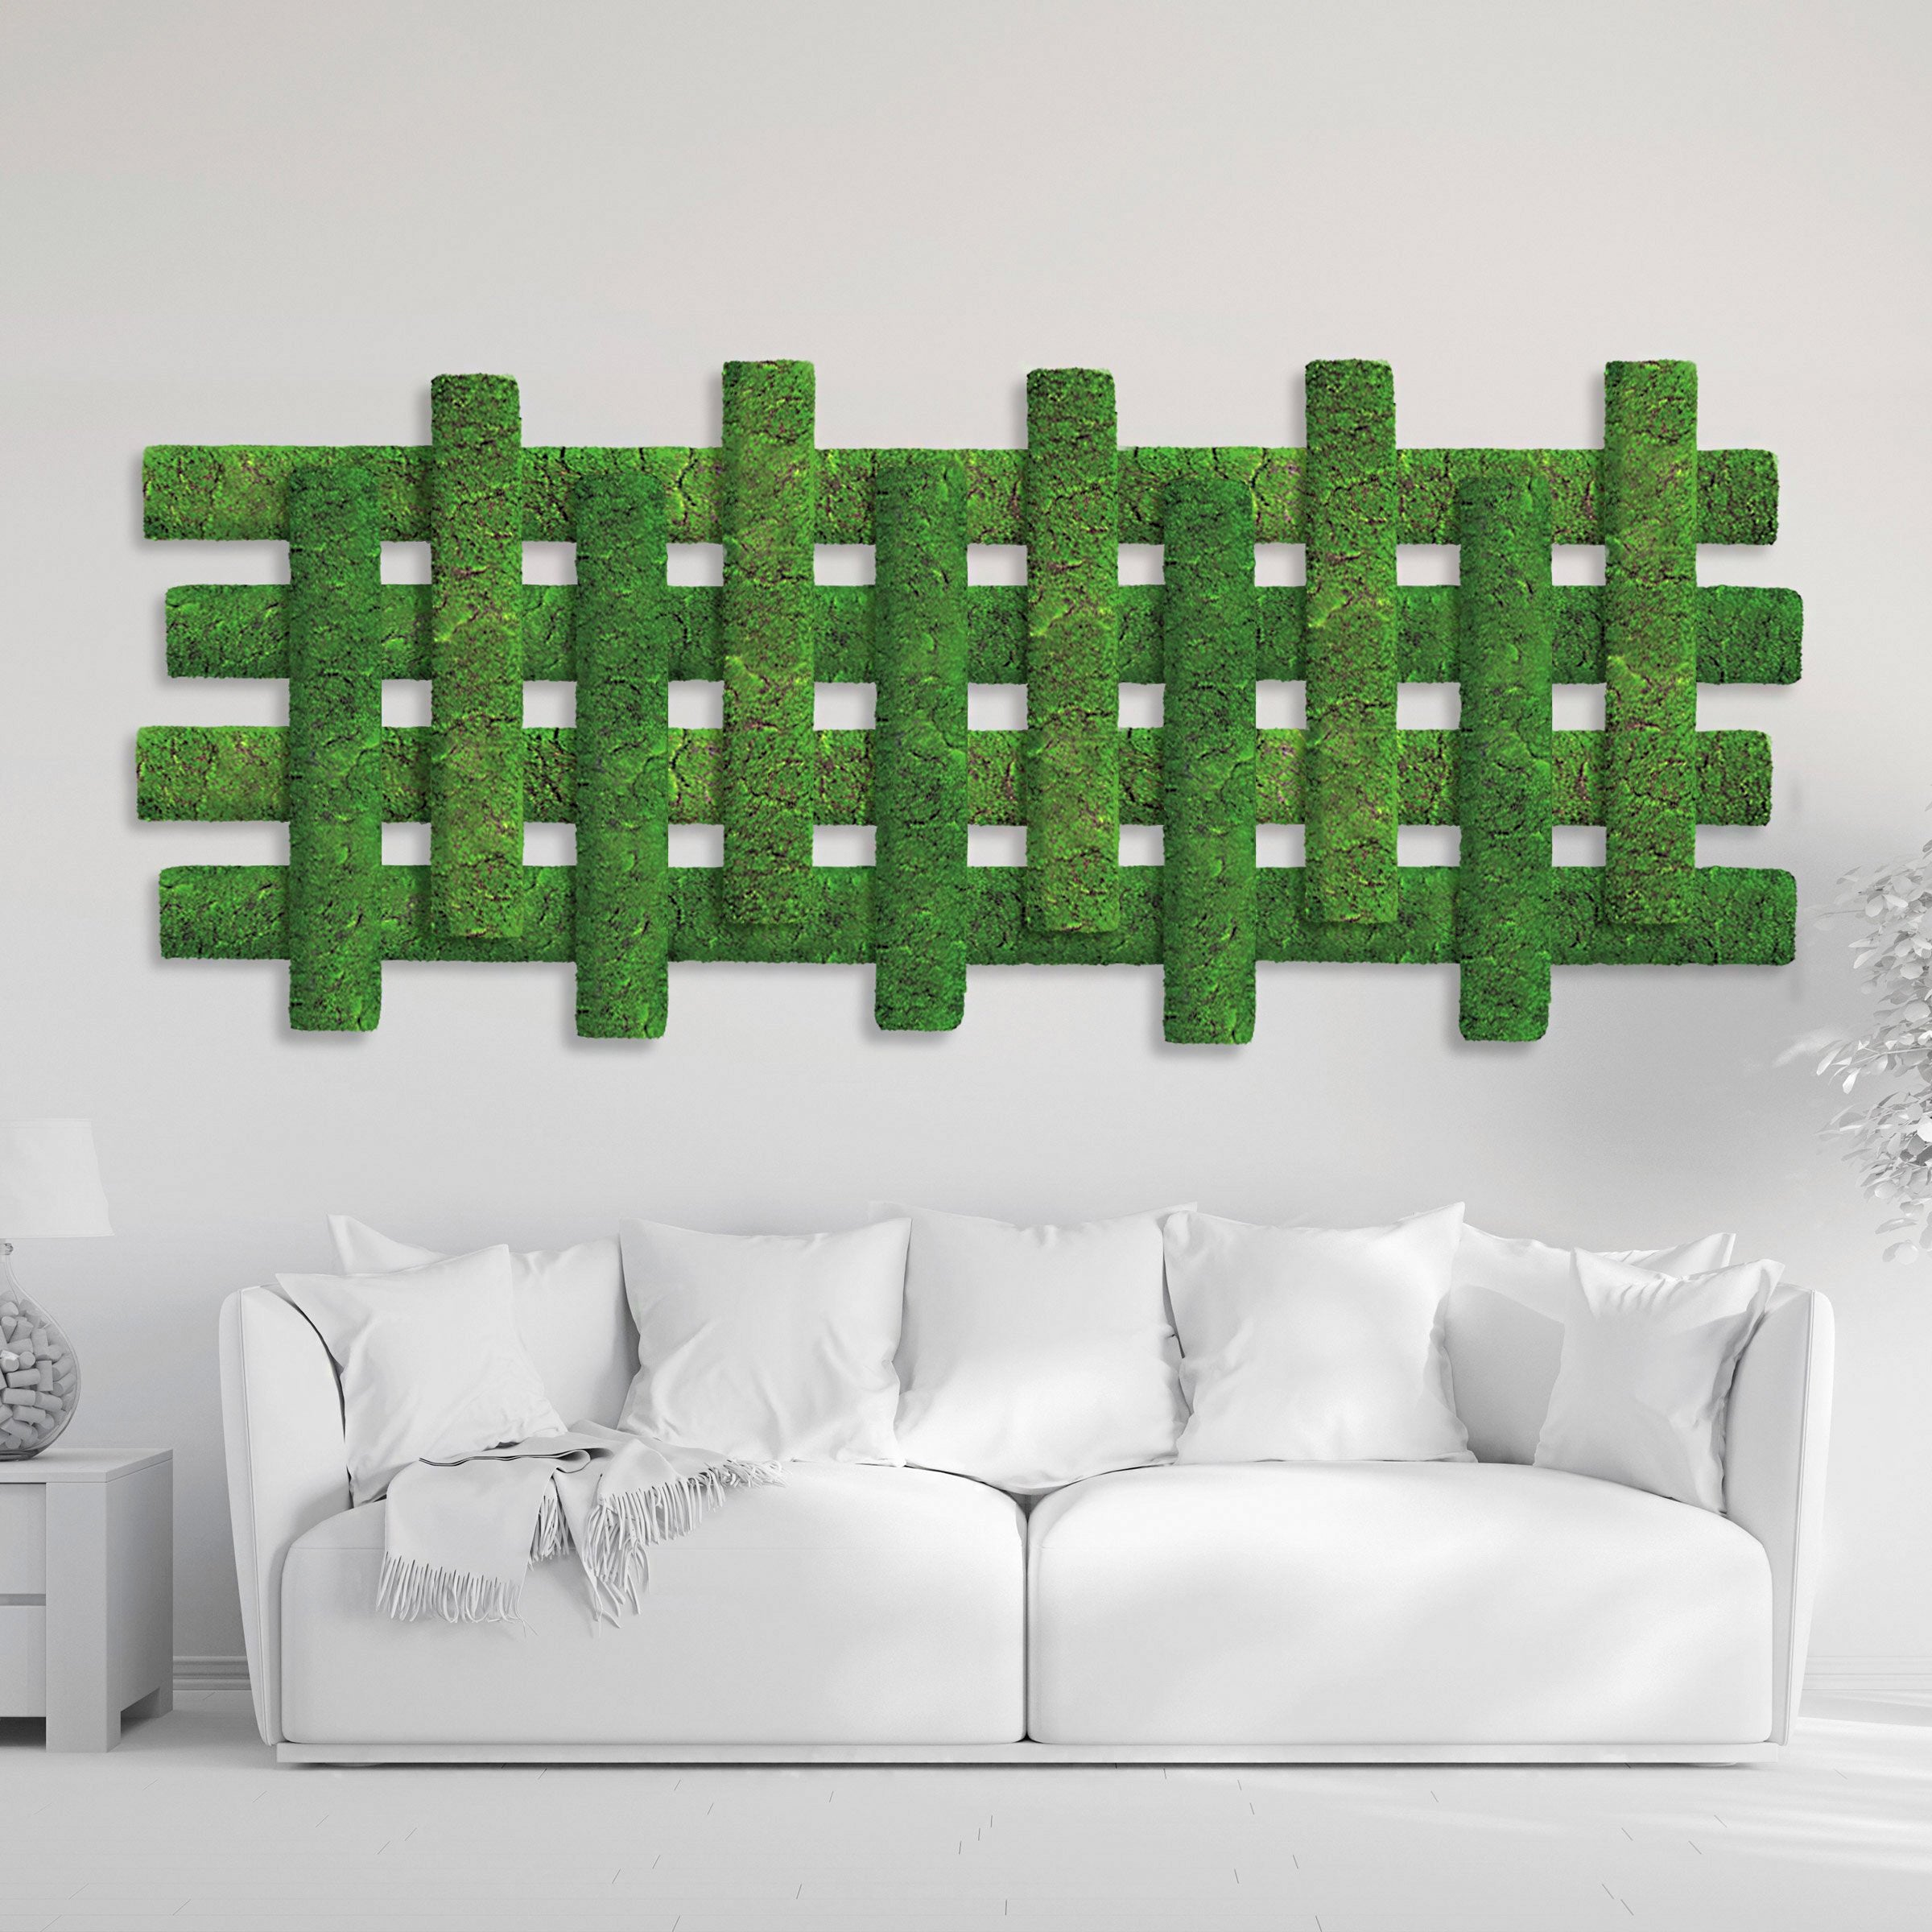 Green Wall Shape, Strips, 'New Moss'